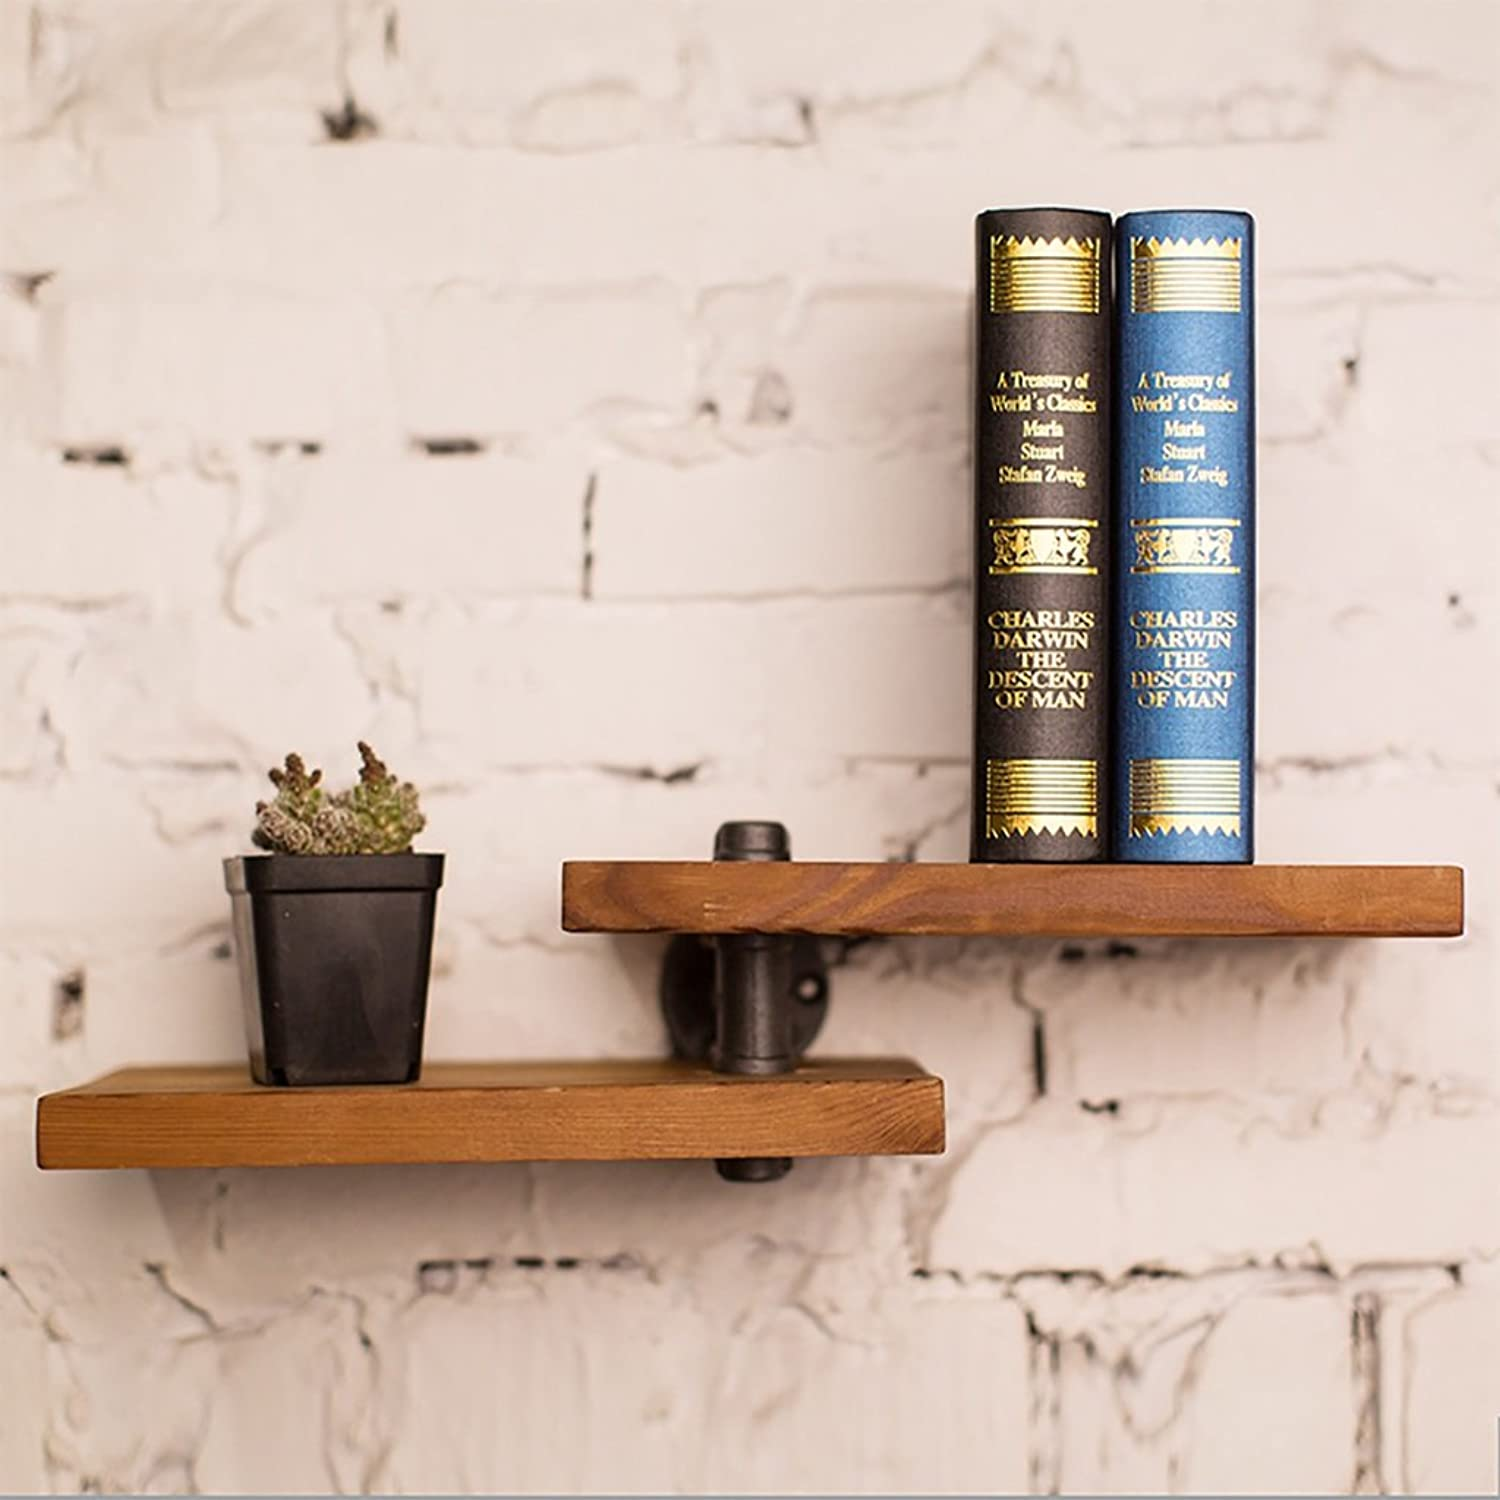 Iron Tube Retro Bookshelf LOFT Iron Water Pipe Wall Hanging Shelves Shelves Water Pipe Display Stand